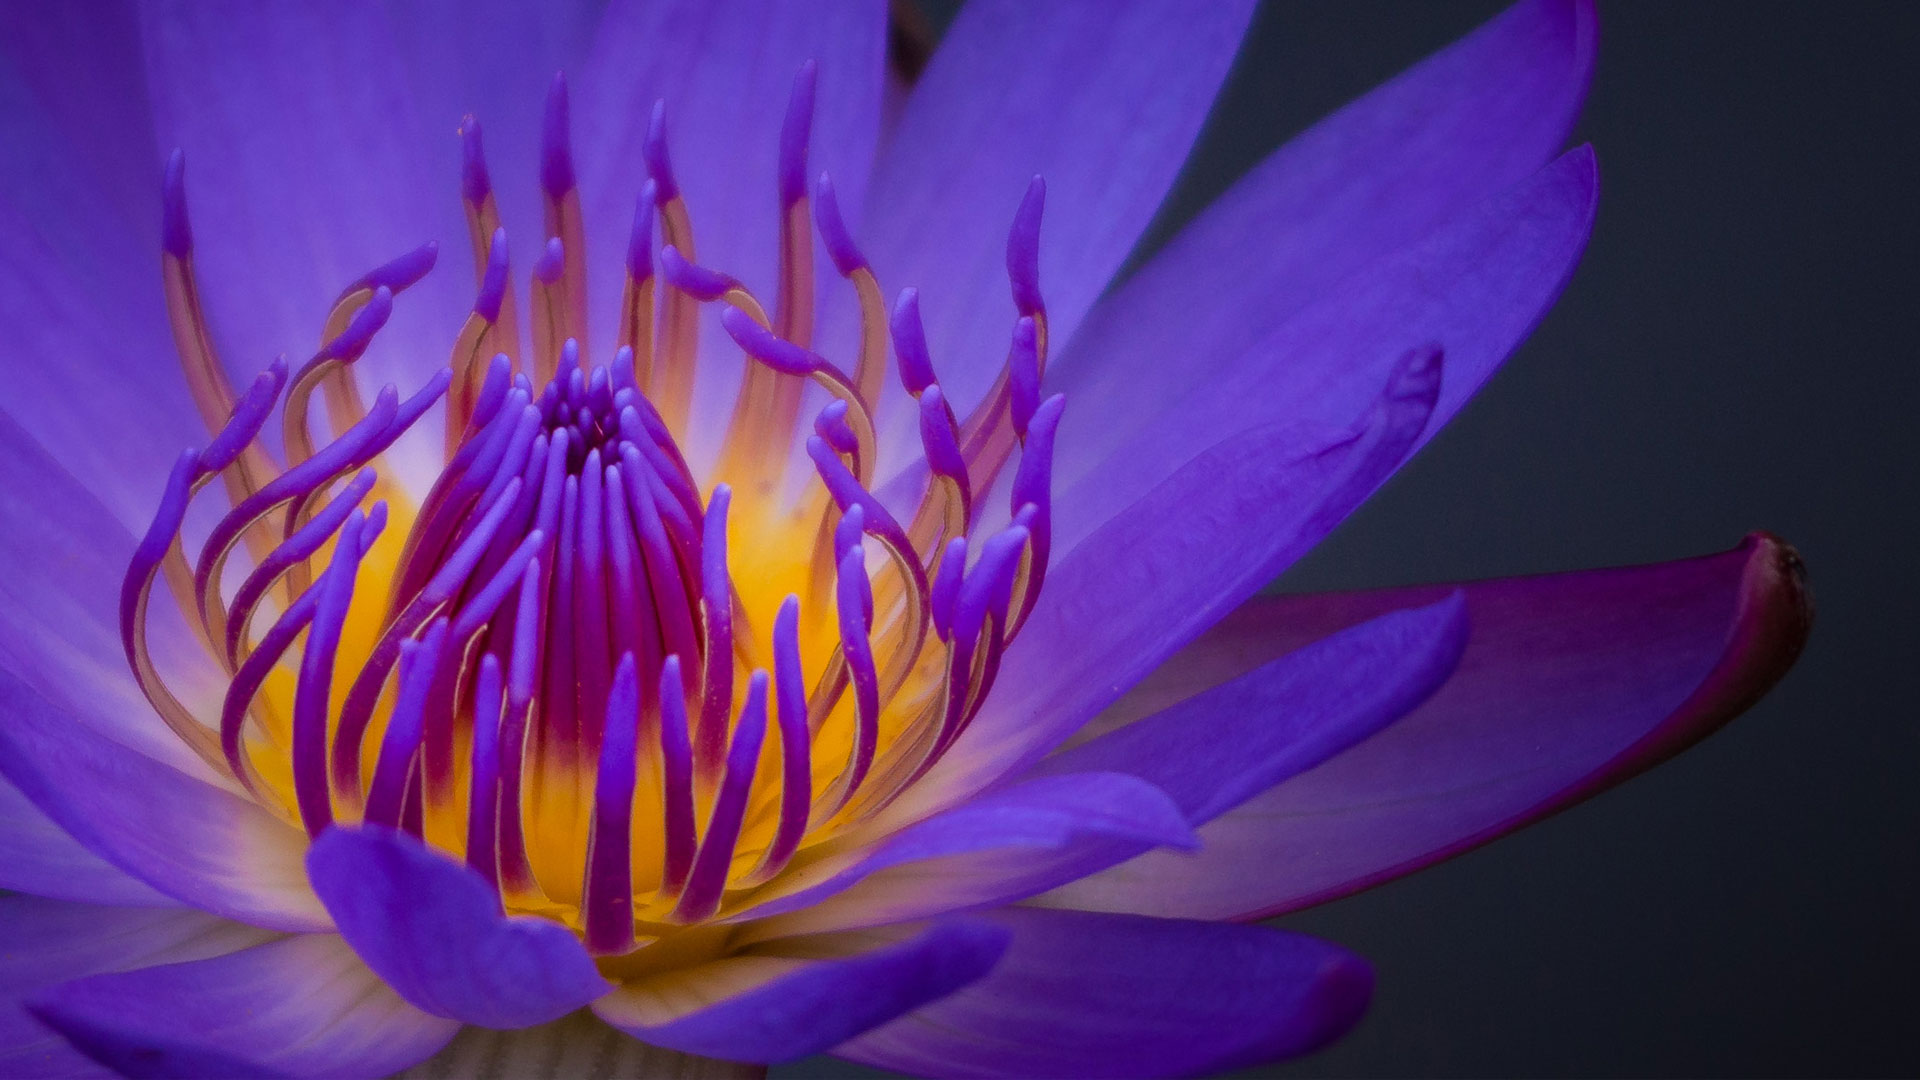 10 Beautiful High Resolution Purple Hd Wallpapers For Laptop 1920 X 1080 Px